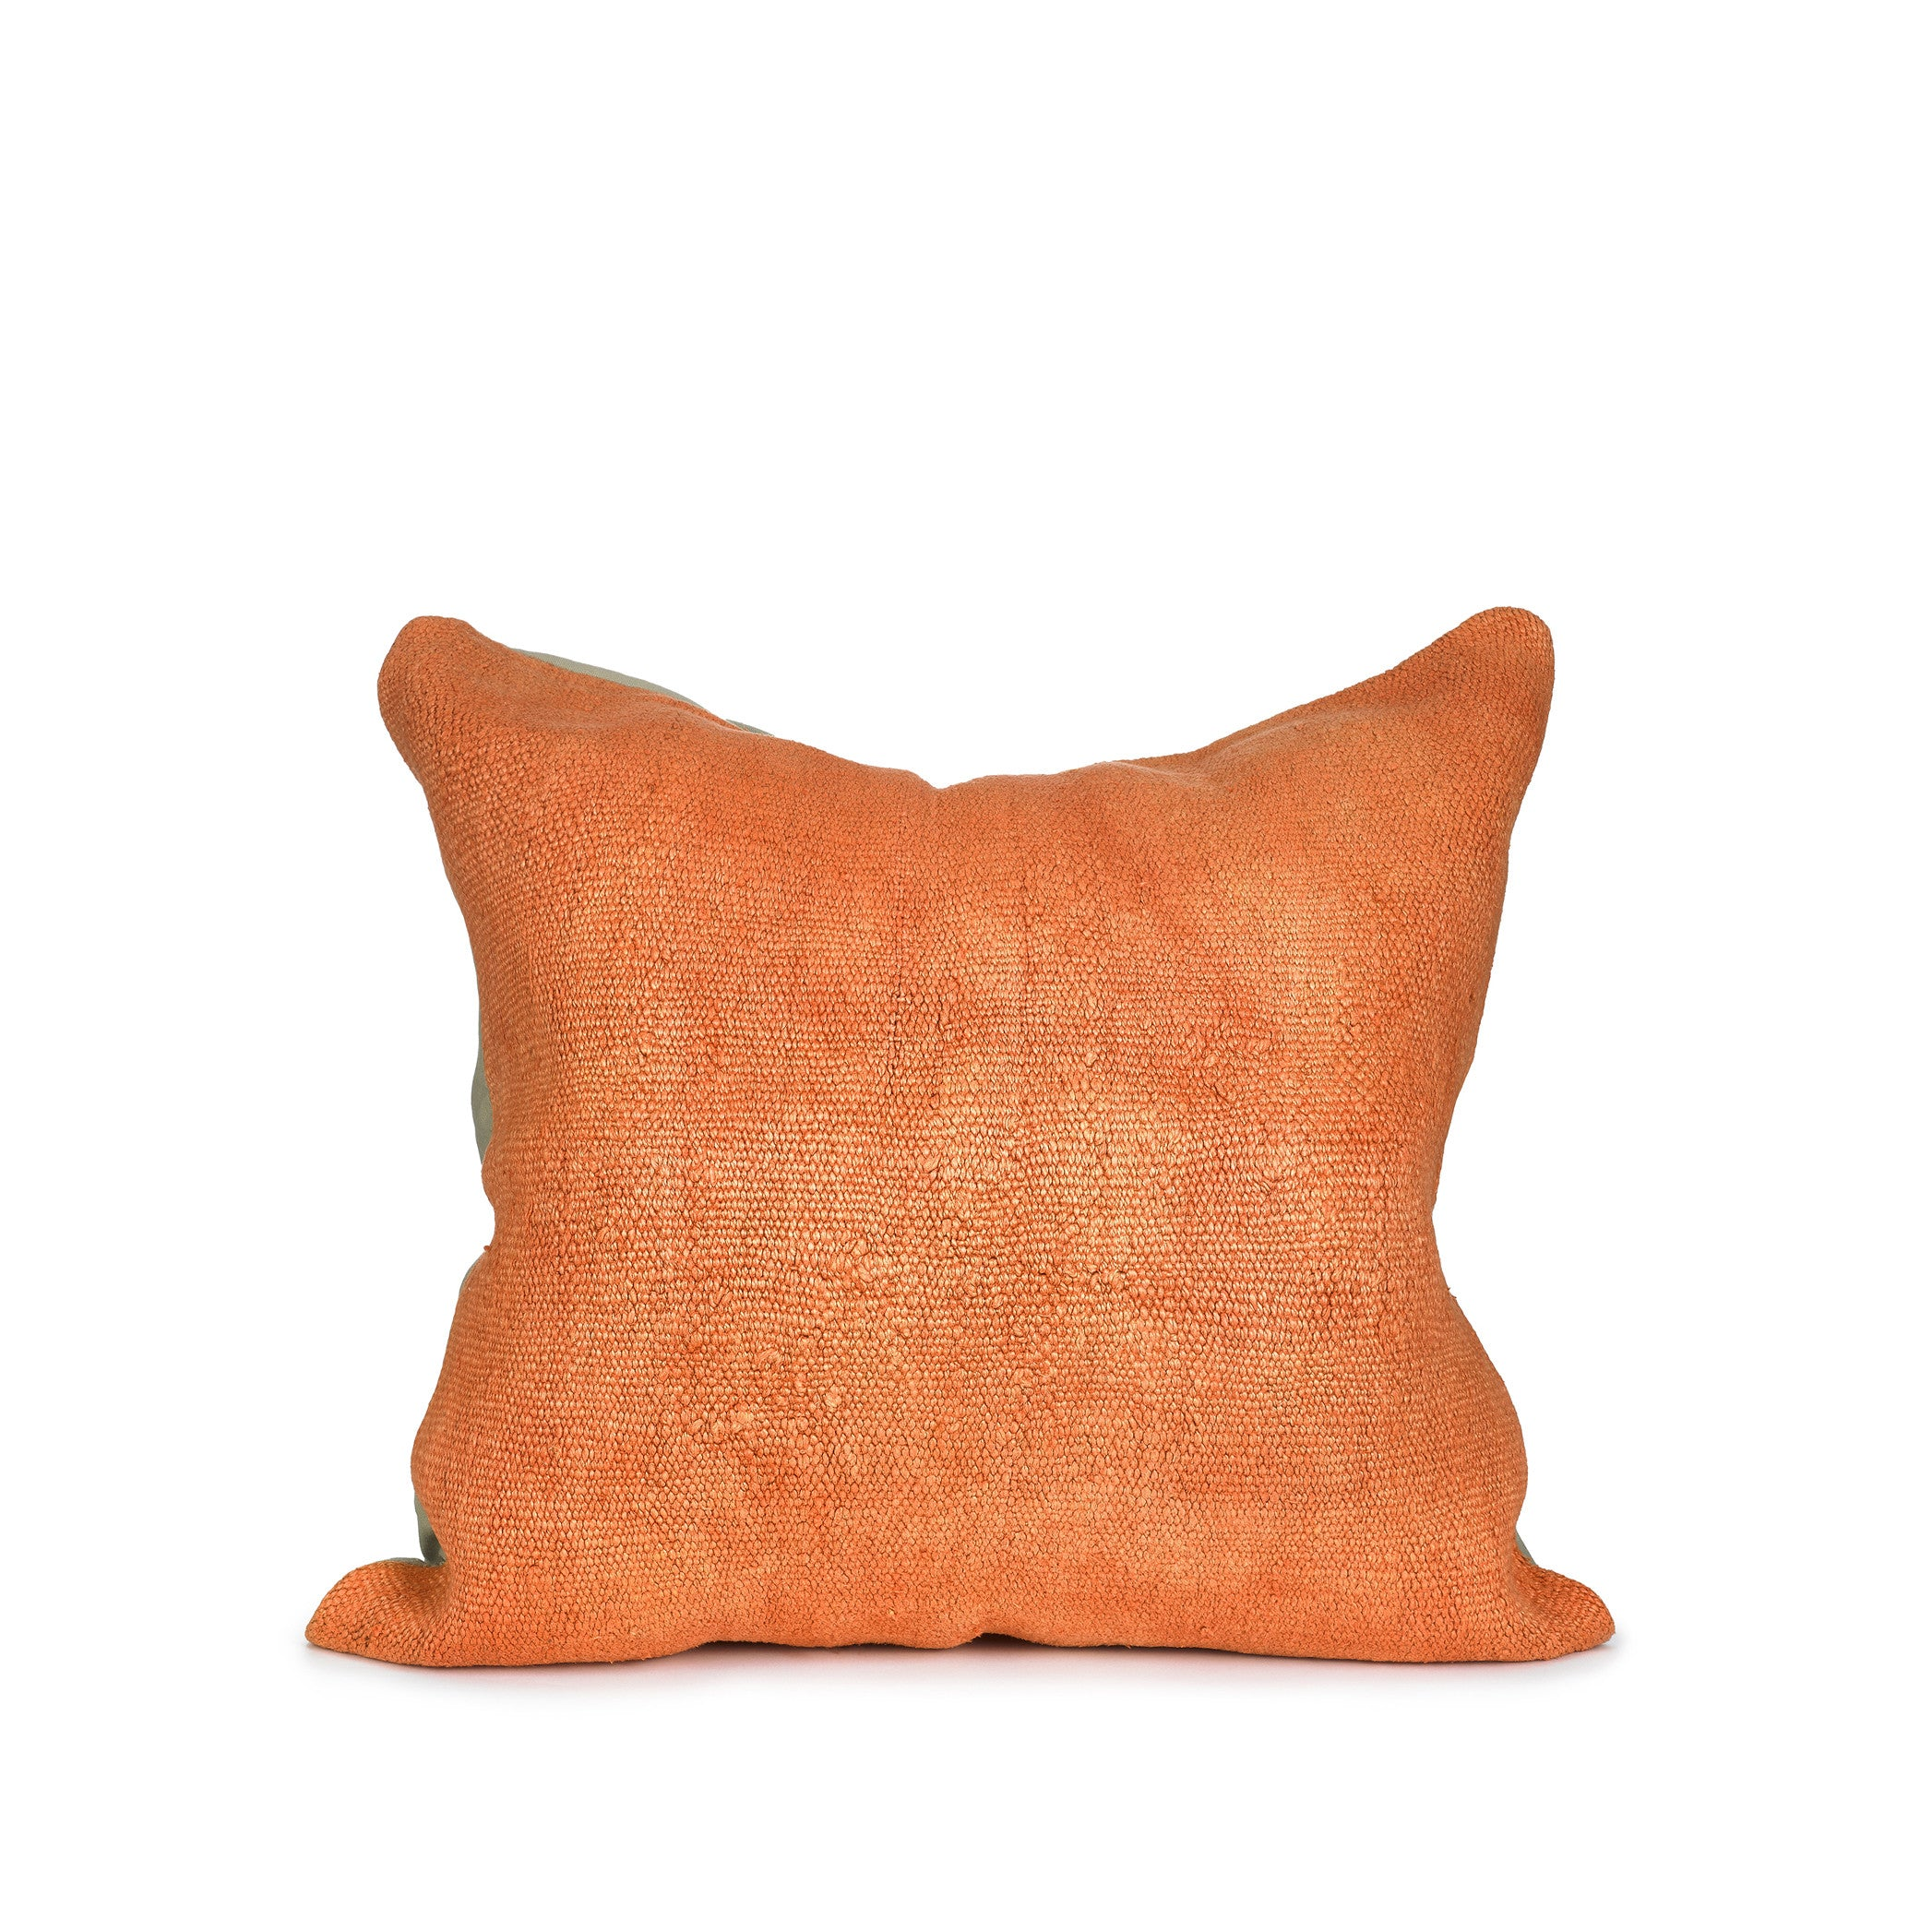 Kilim Cushion in Orange